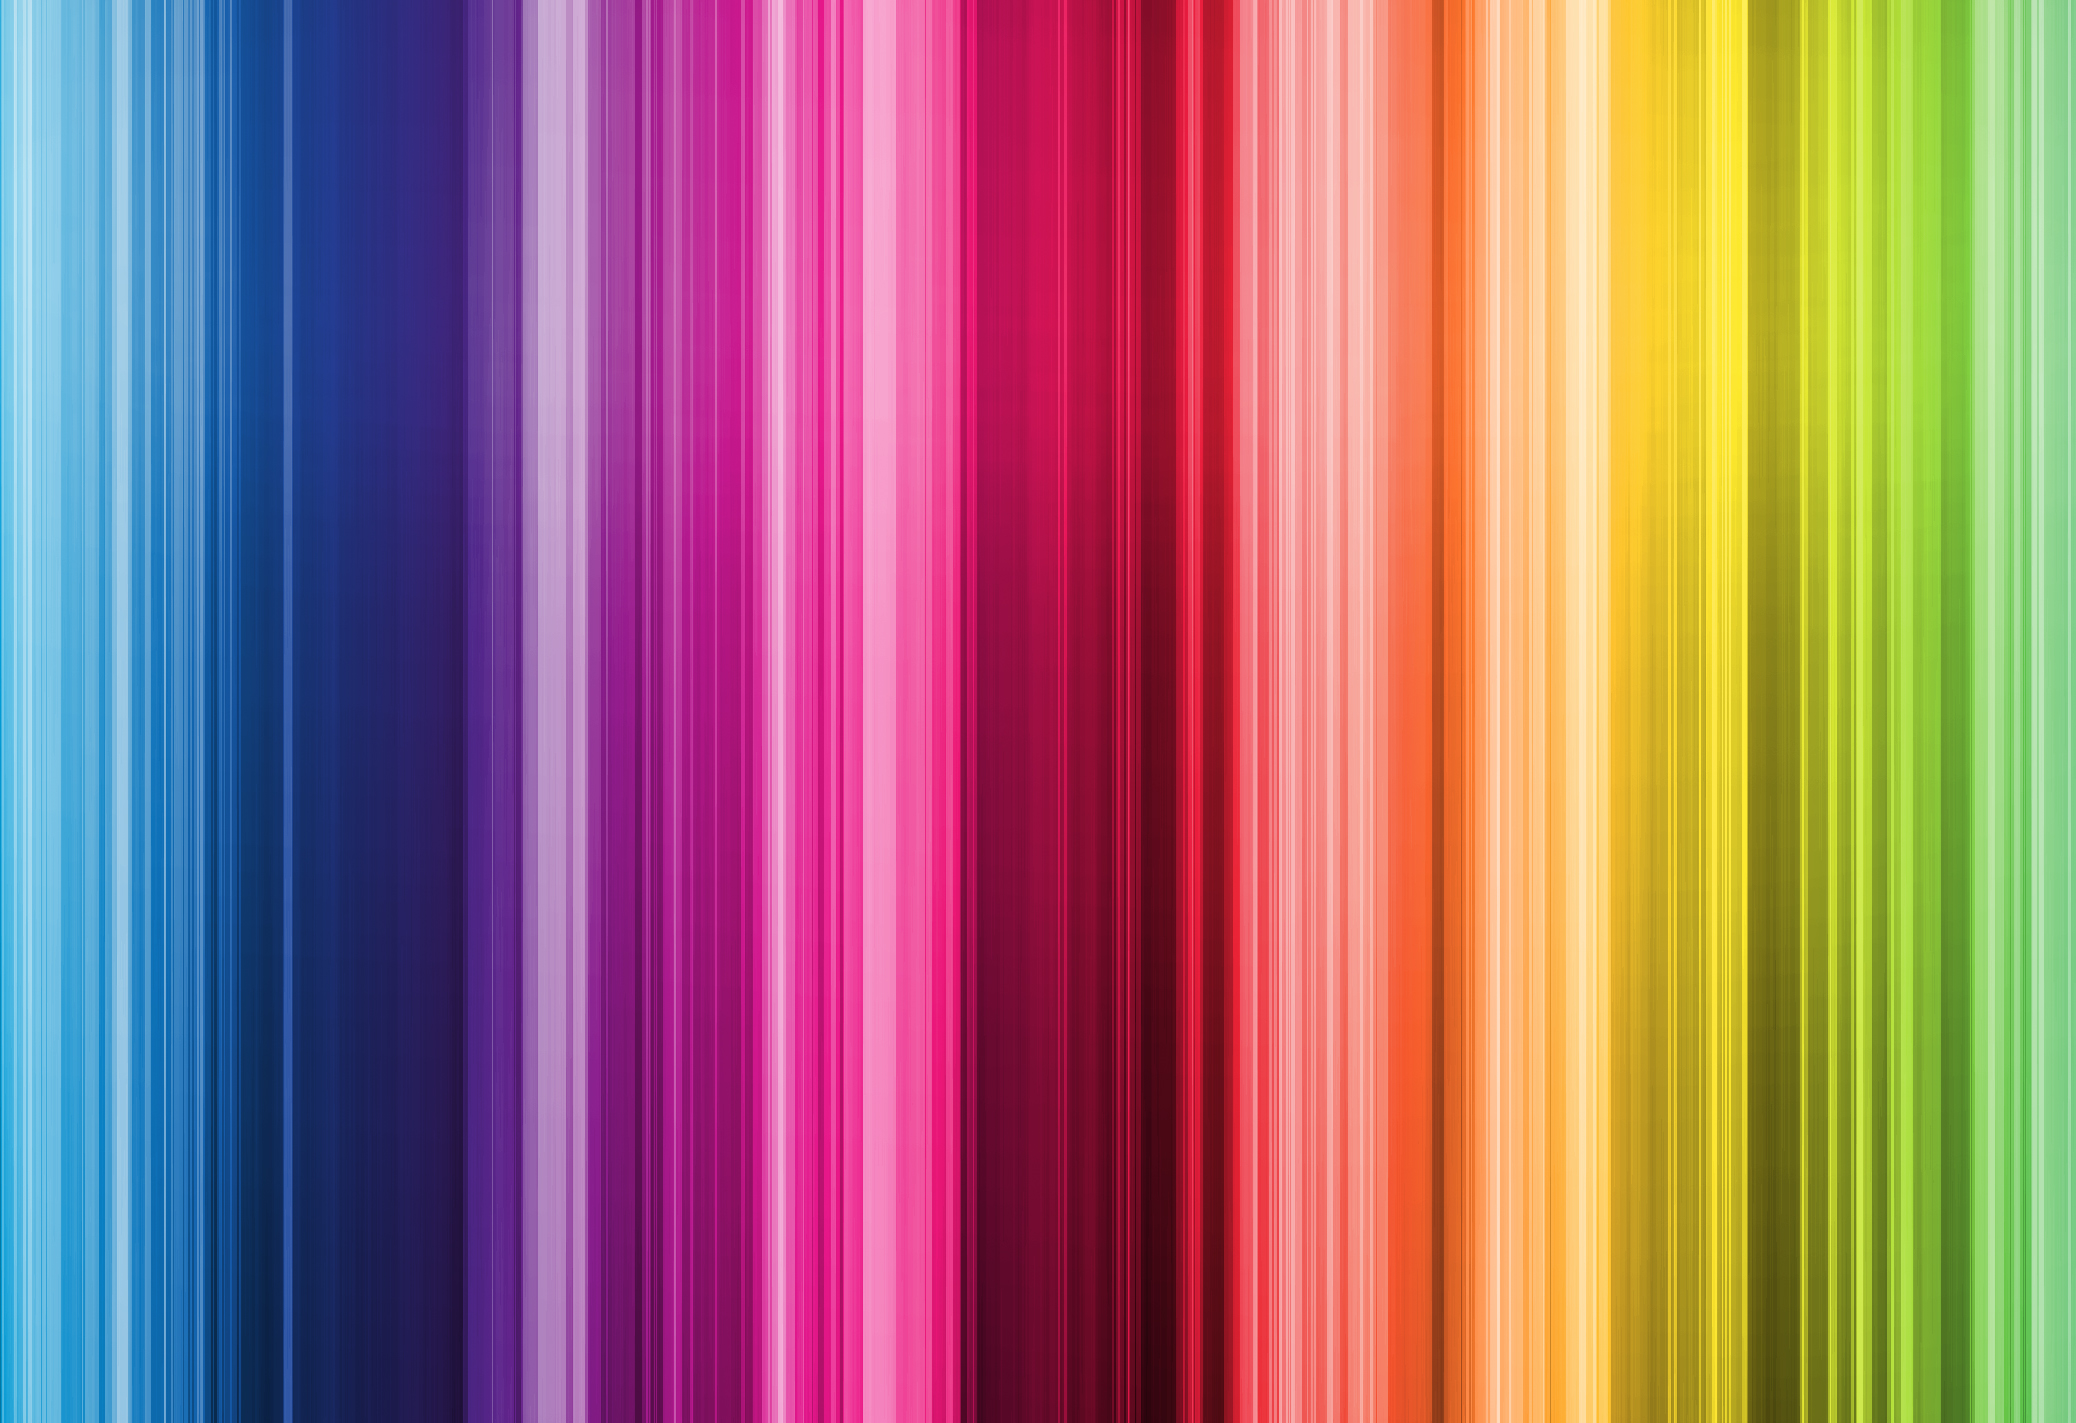 Rainbow stripes, Abstract, Lines, Texture, Stripes, HQ Photo